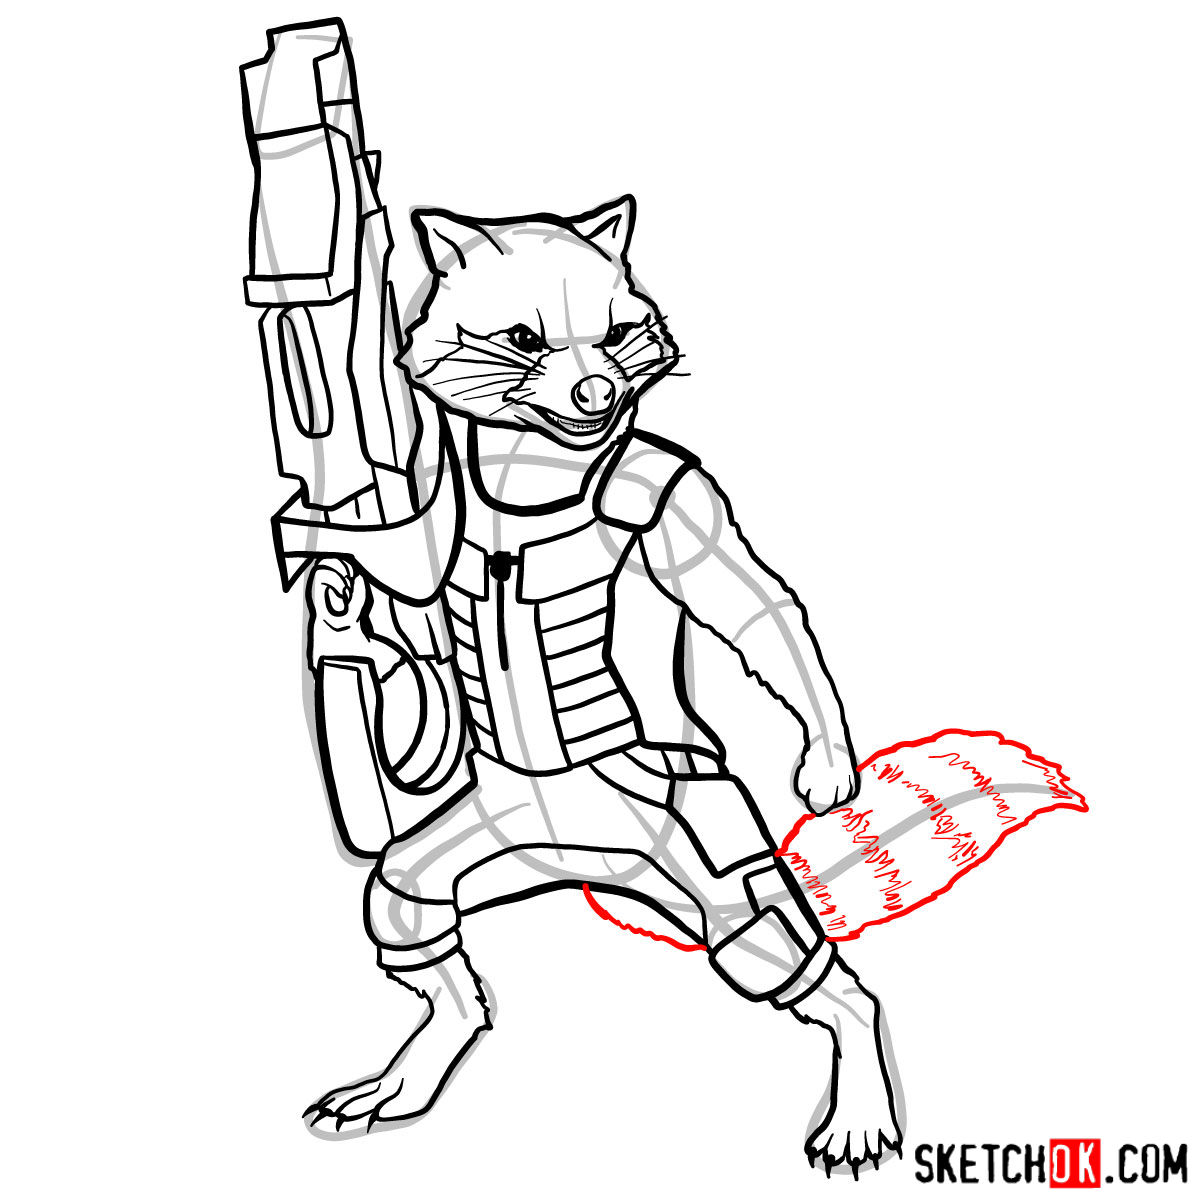 How to draw Rocket Raccoon - step 13